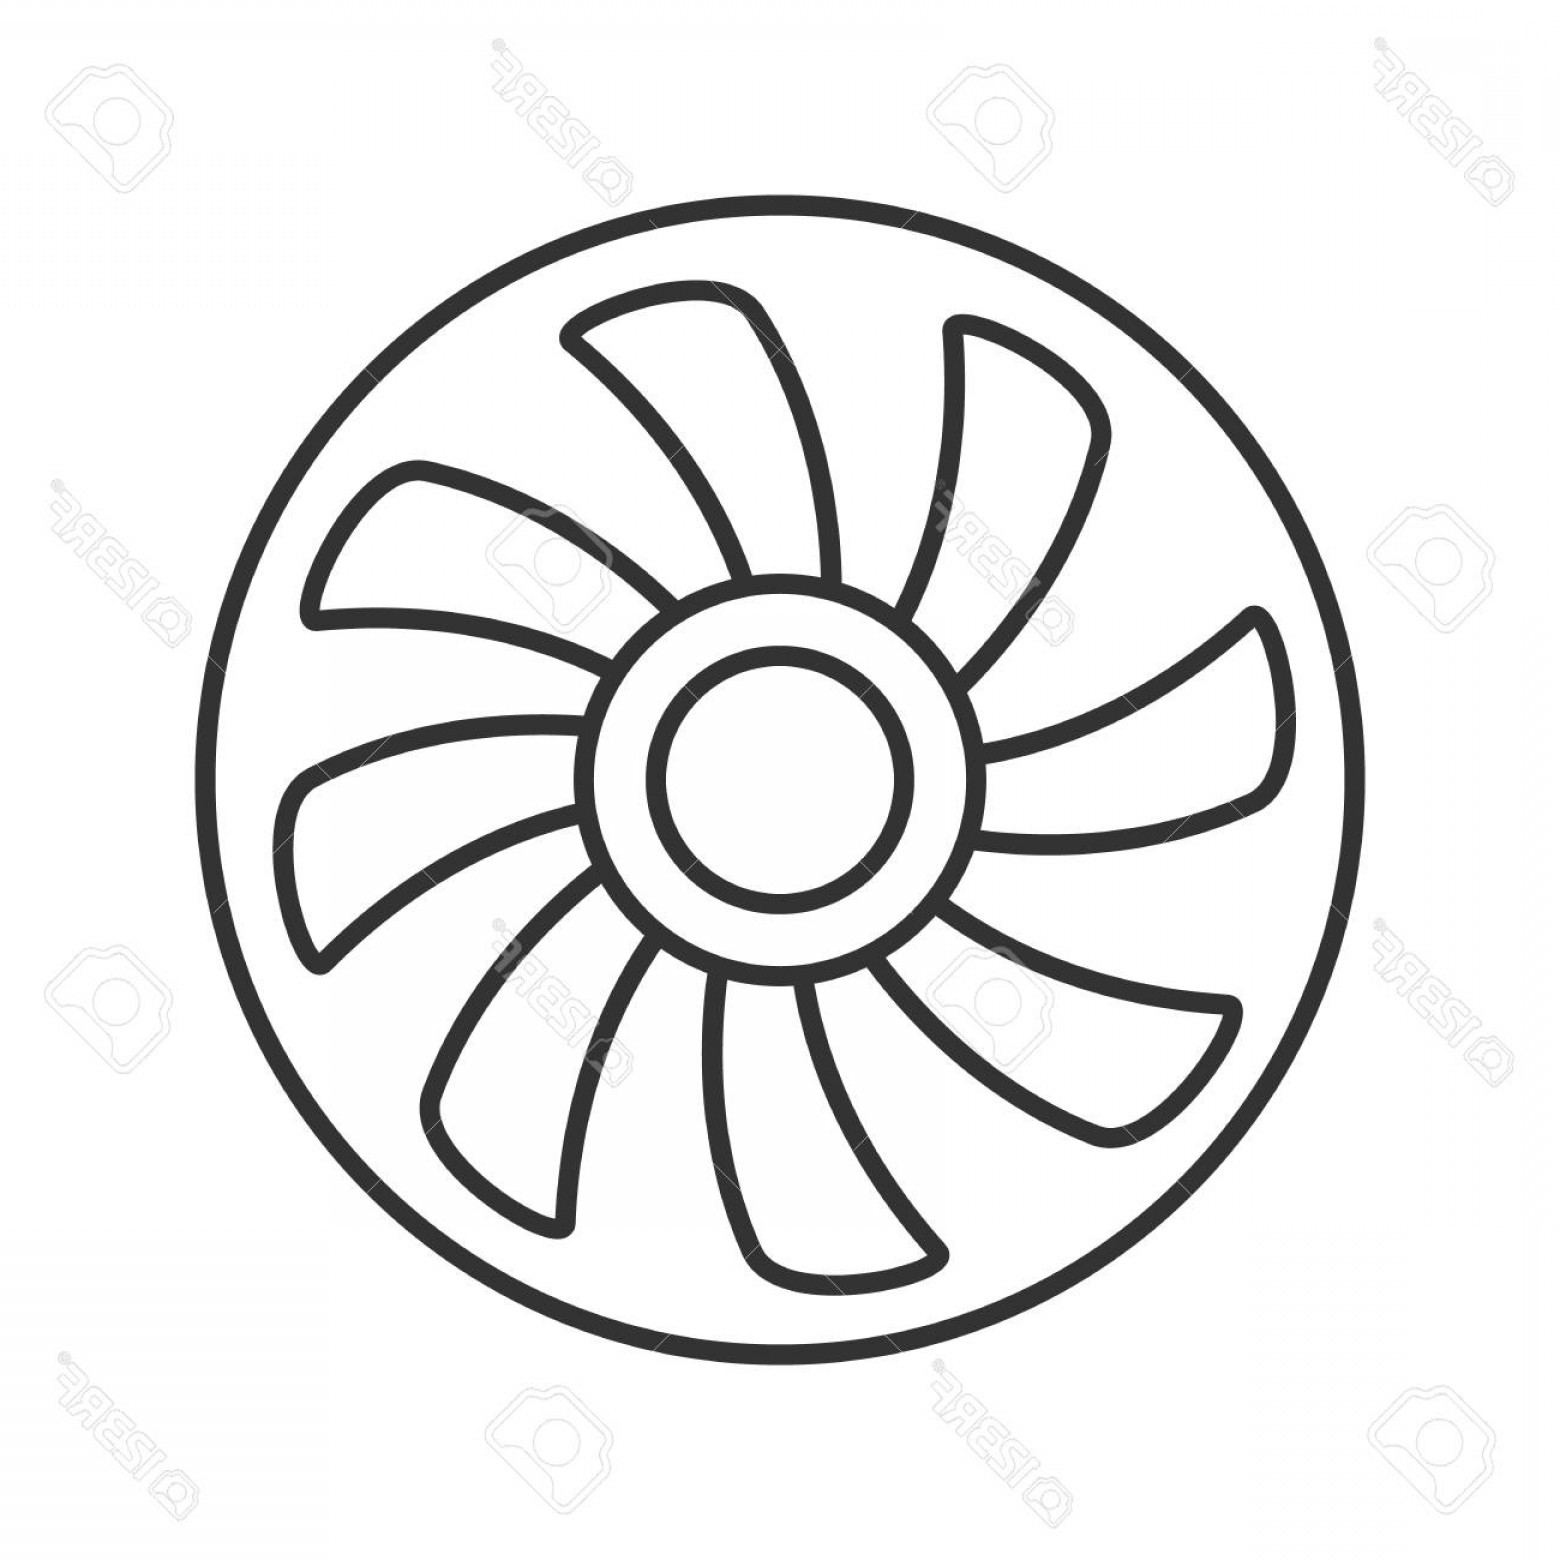 Exhaust Fan Symbol Drawing At Getdrawings